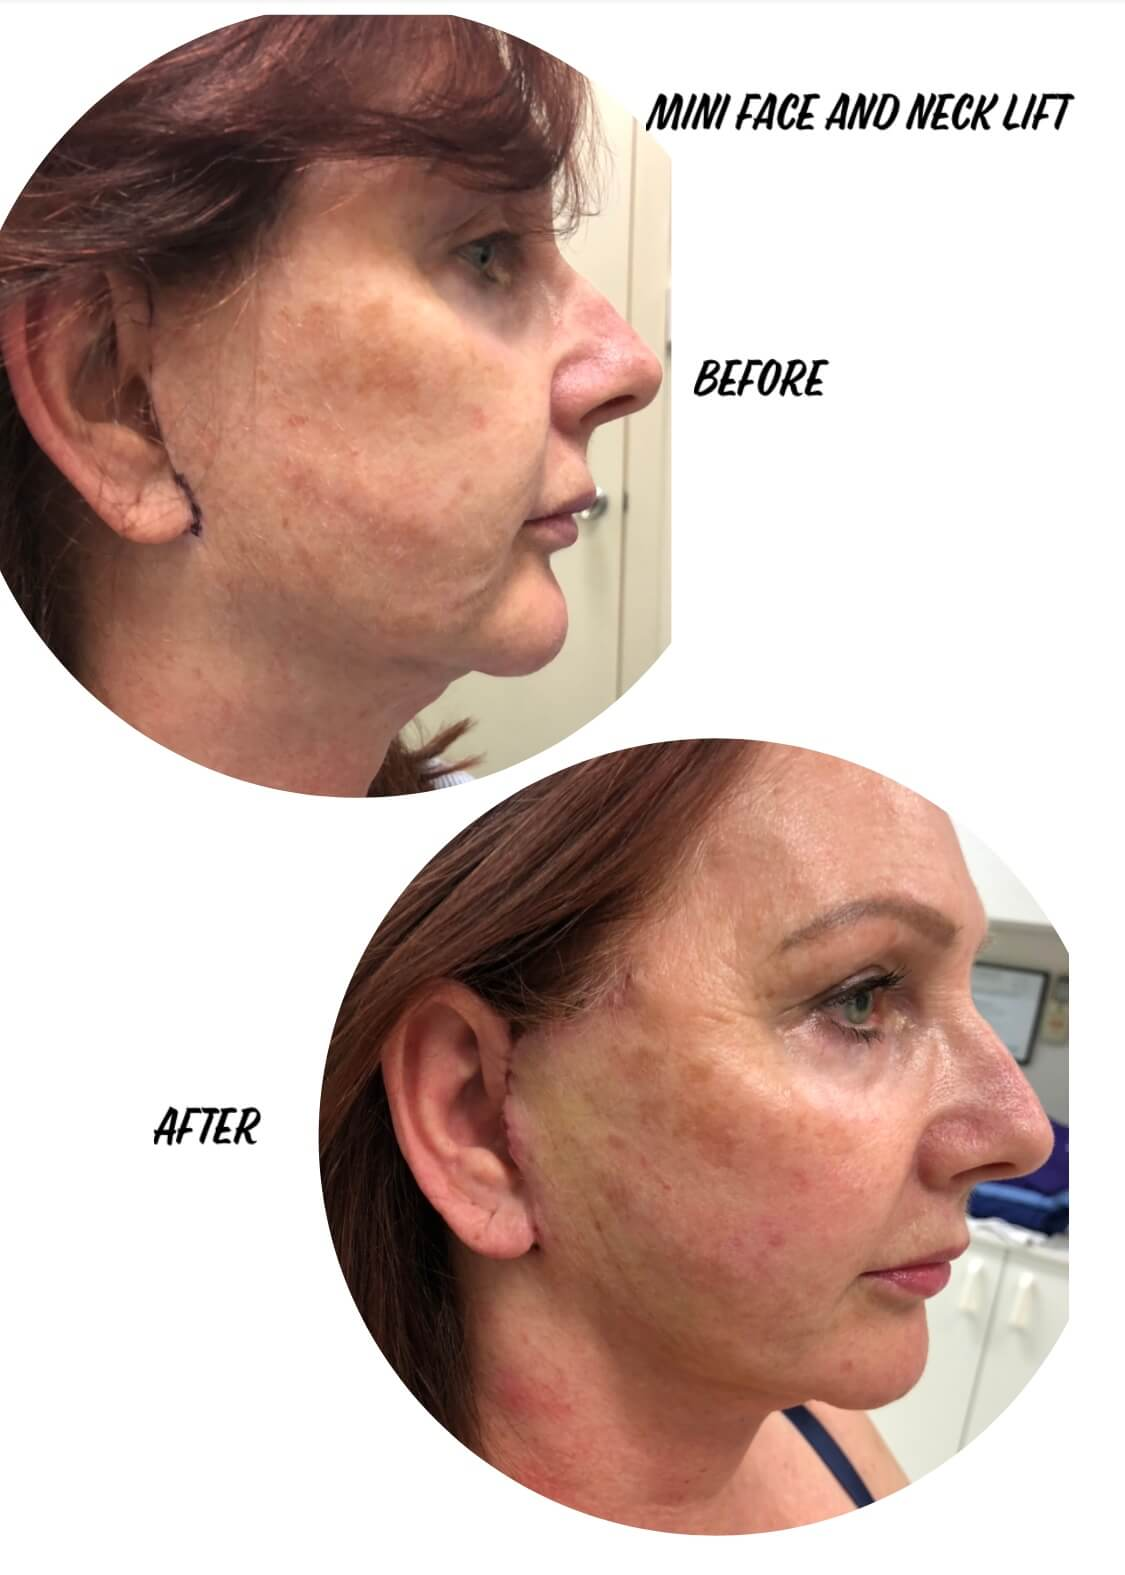 Before and after image of mini face lift and neck lift surgery